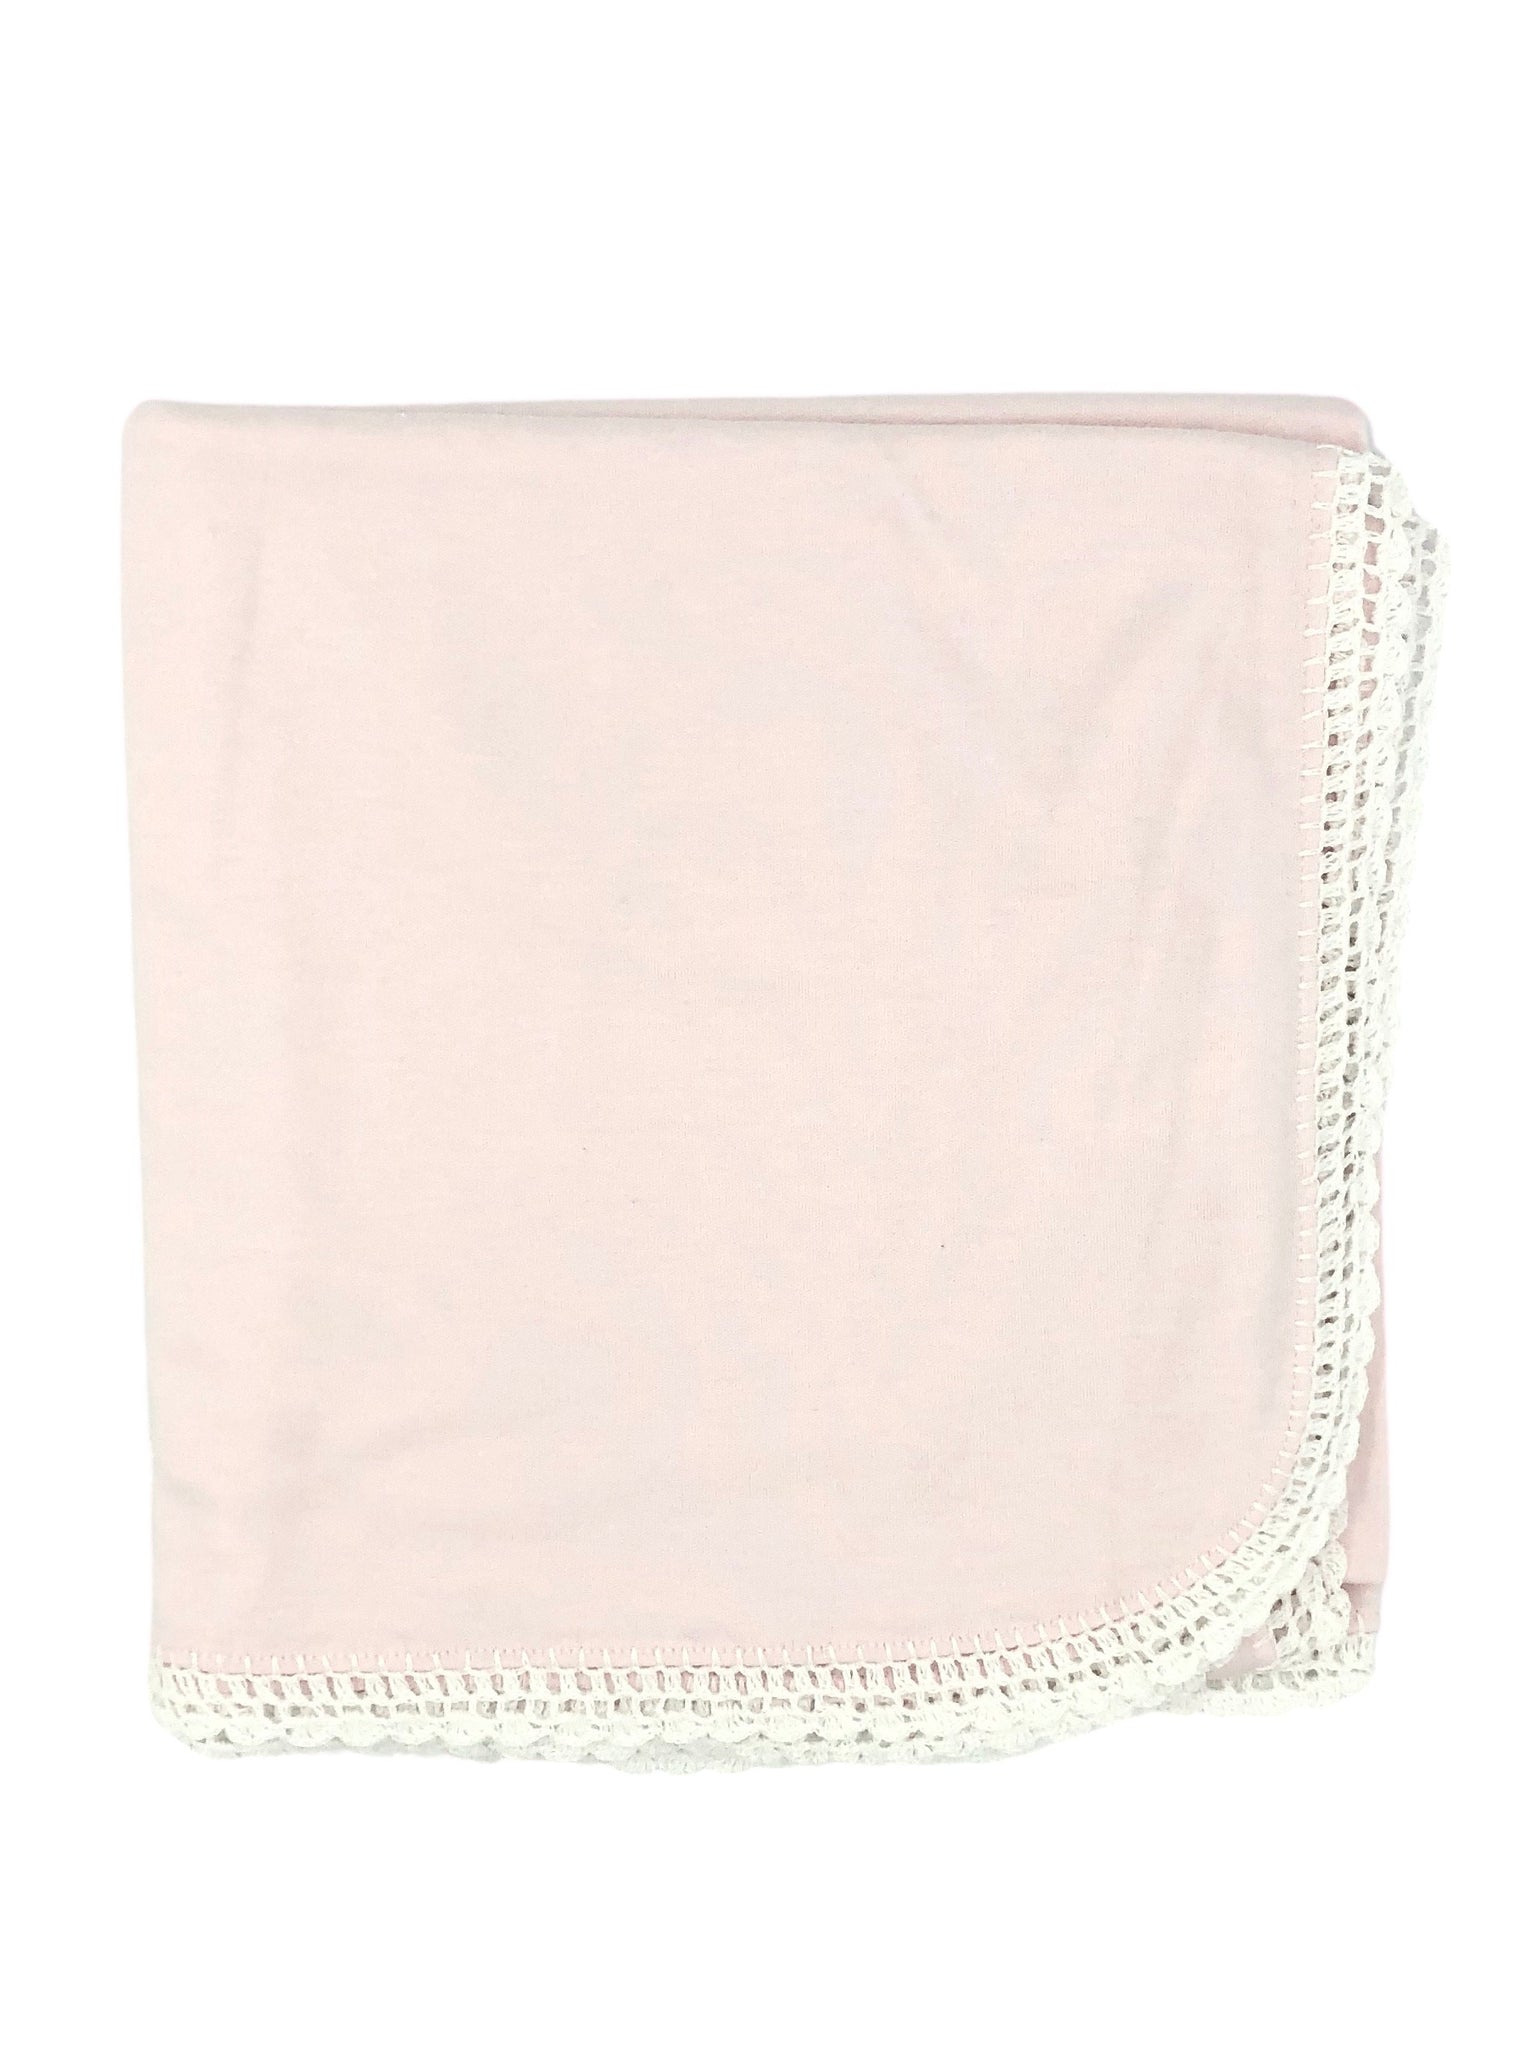 Auraluz Knit Blanket with White Lace Trim